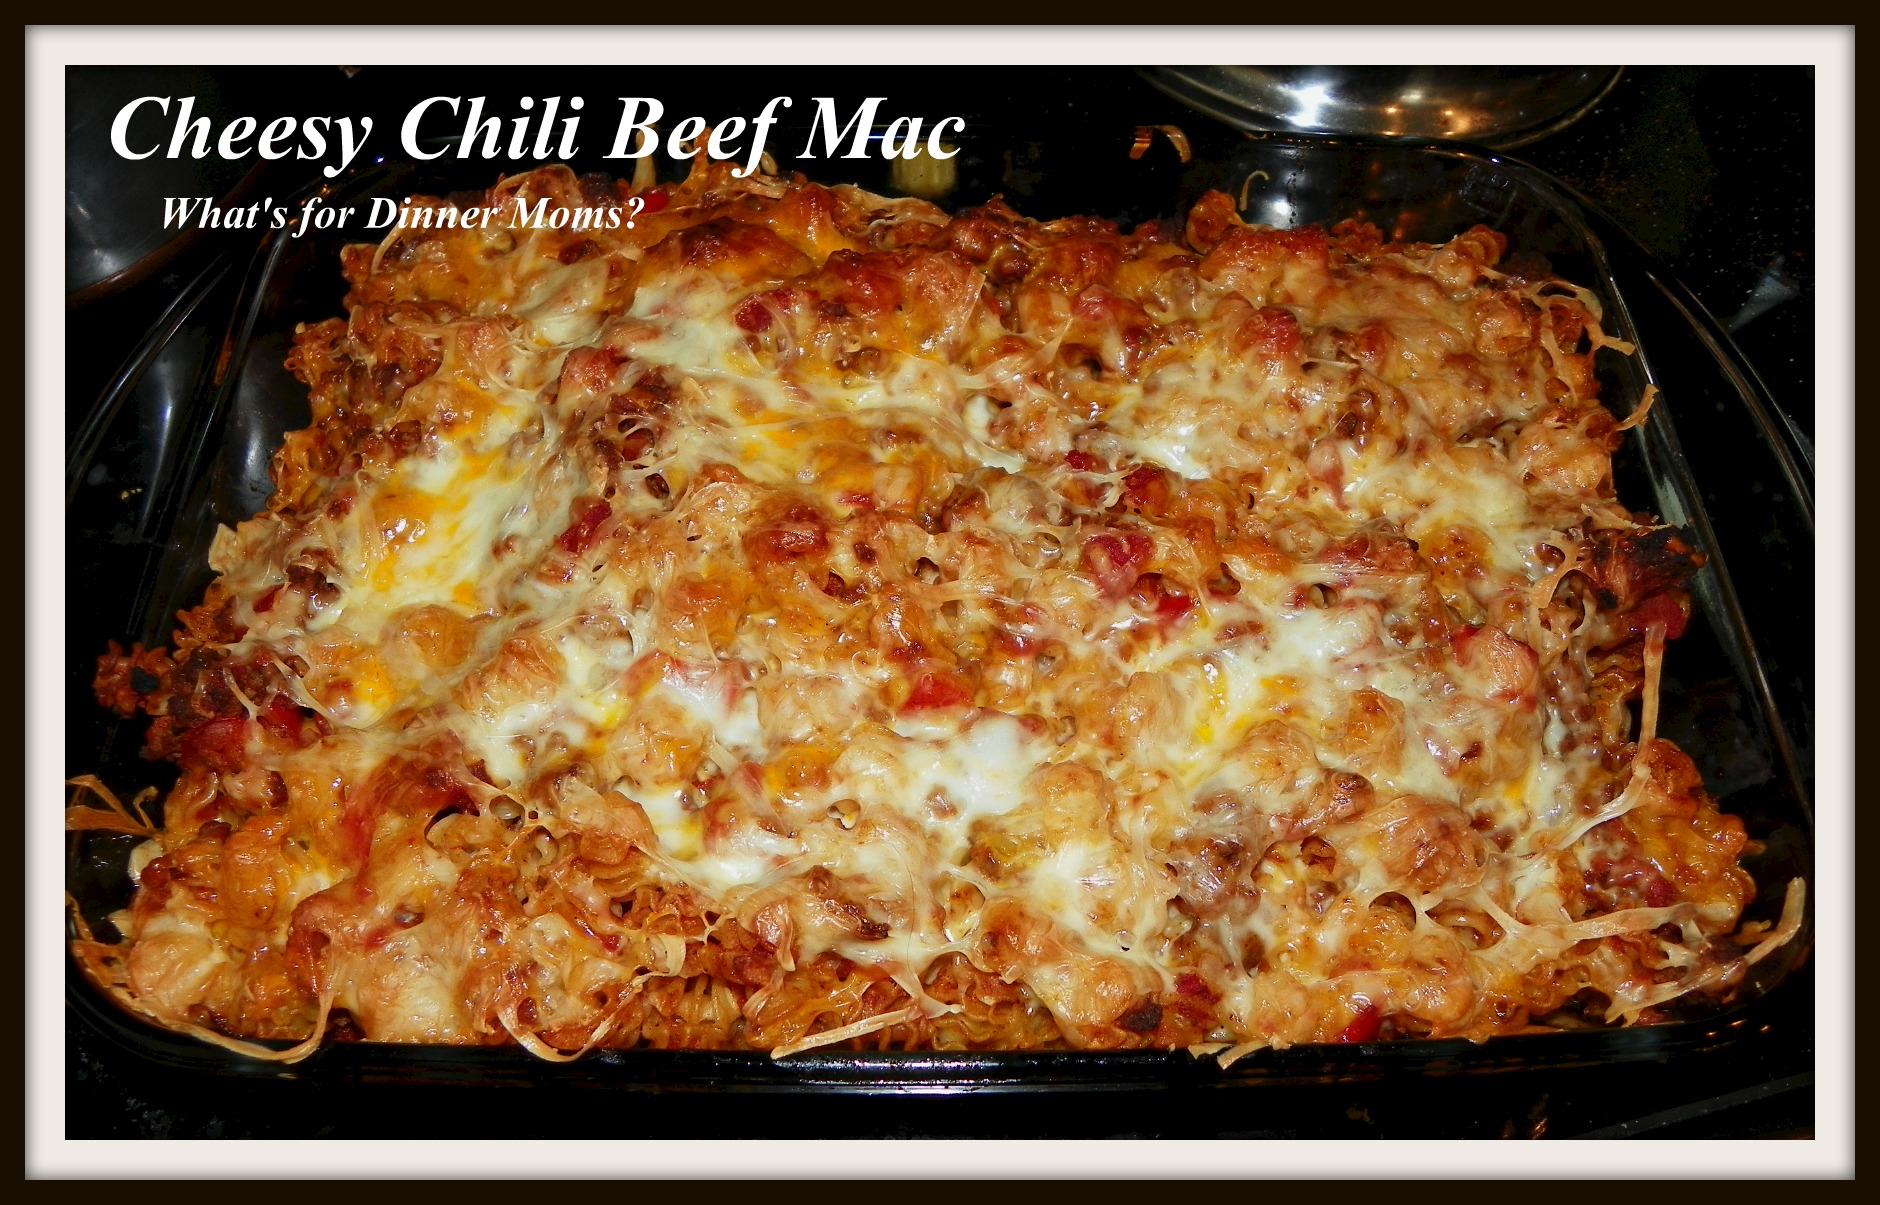 Cheesy Chili Beef Mac – What's for Dinner Moms?